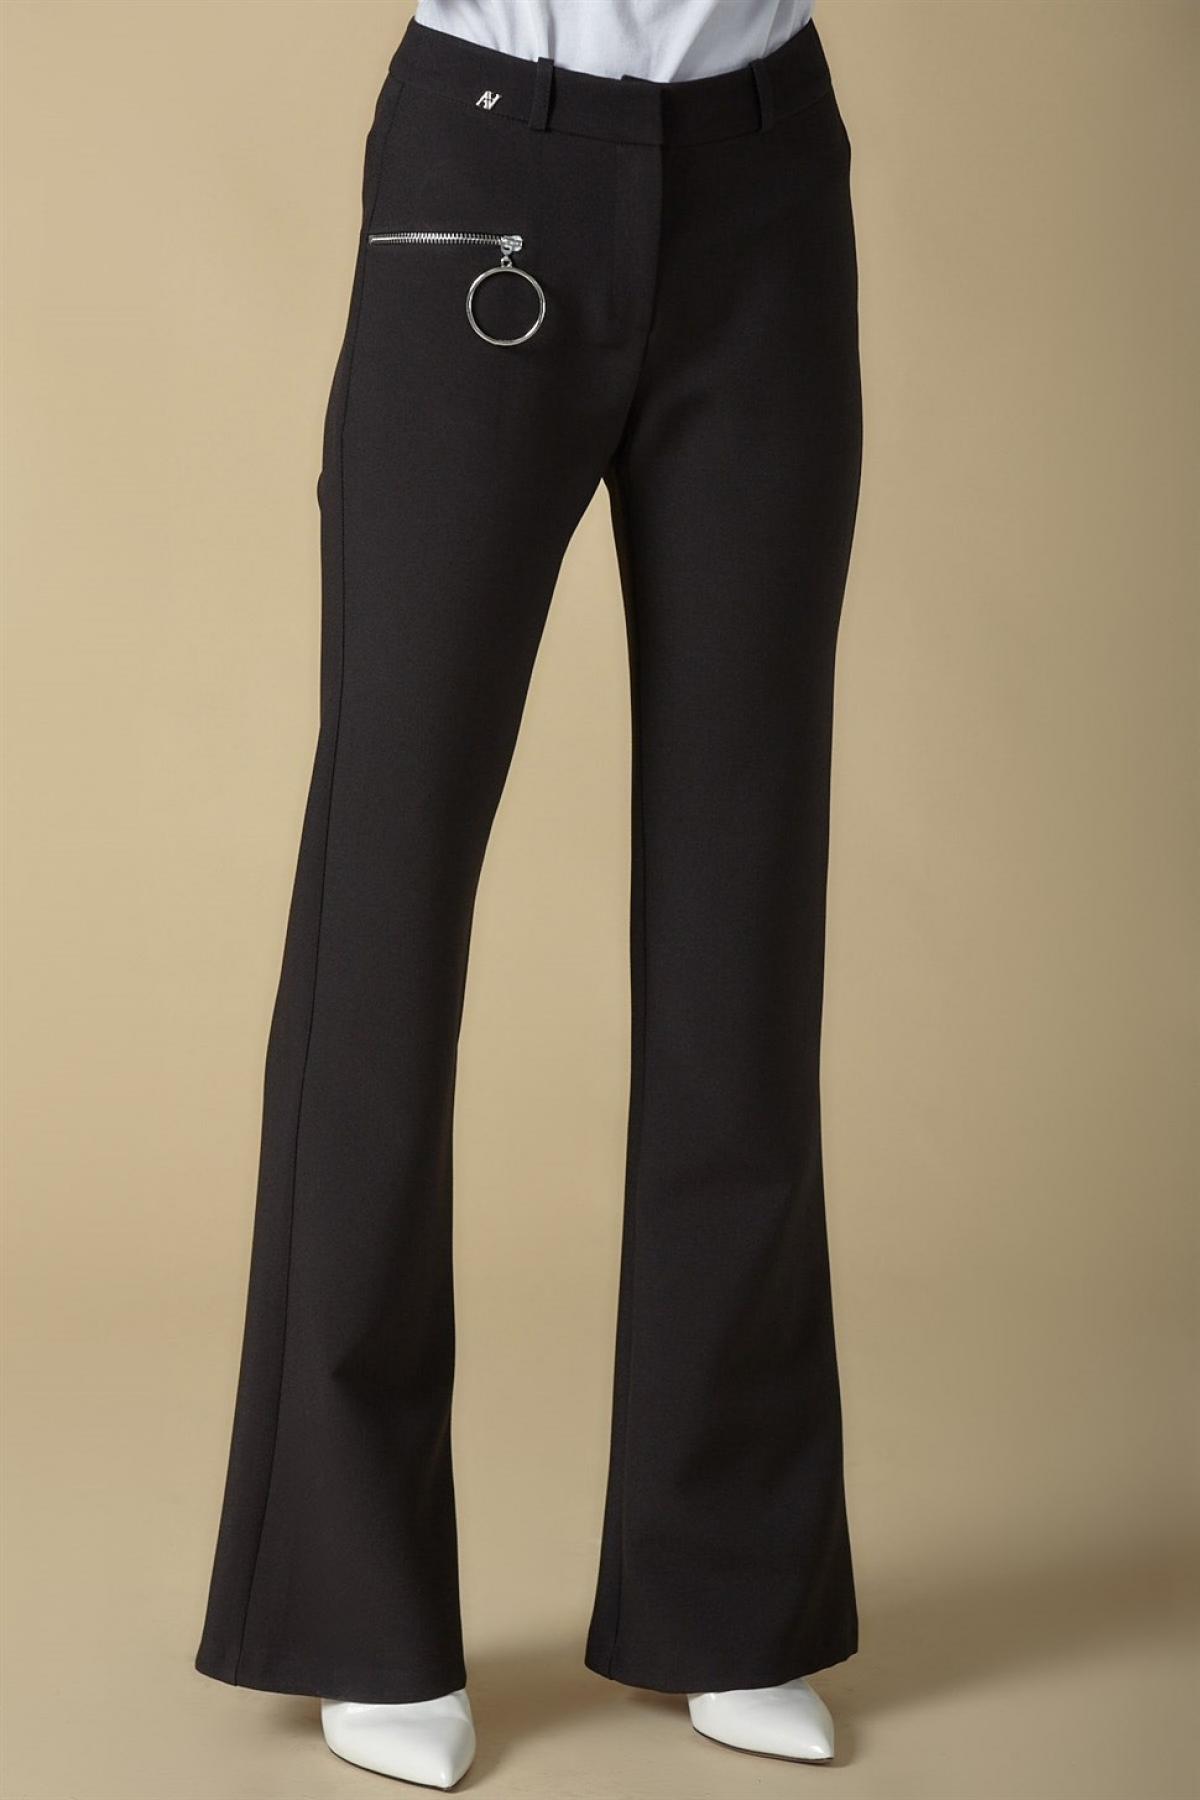 Armine Zipper Detailed Trousers - 9K2809 Black